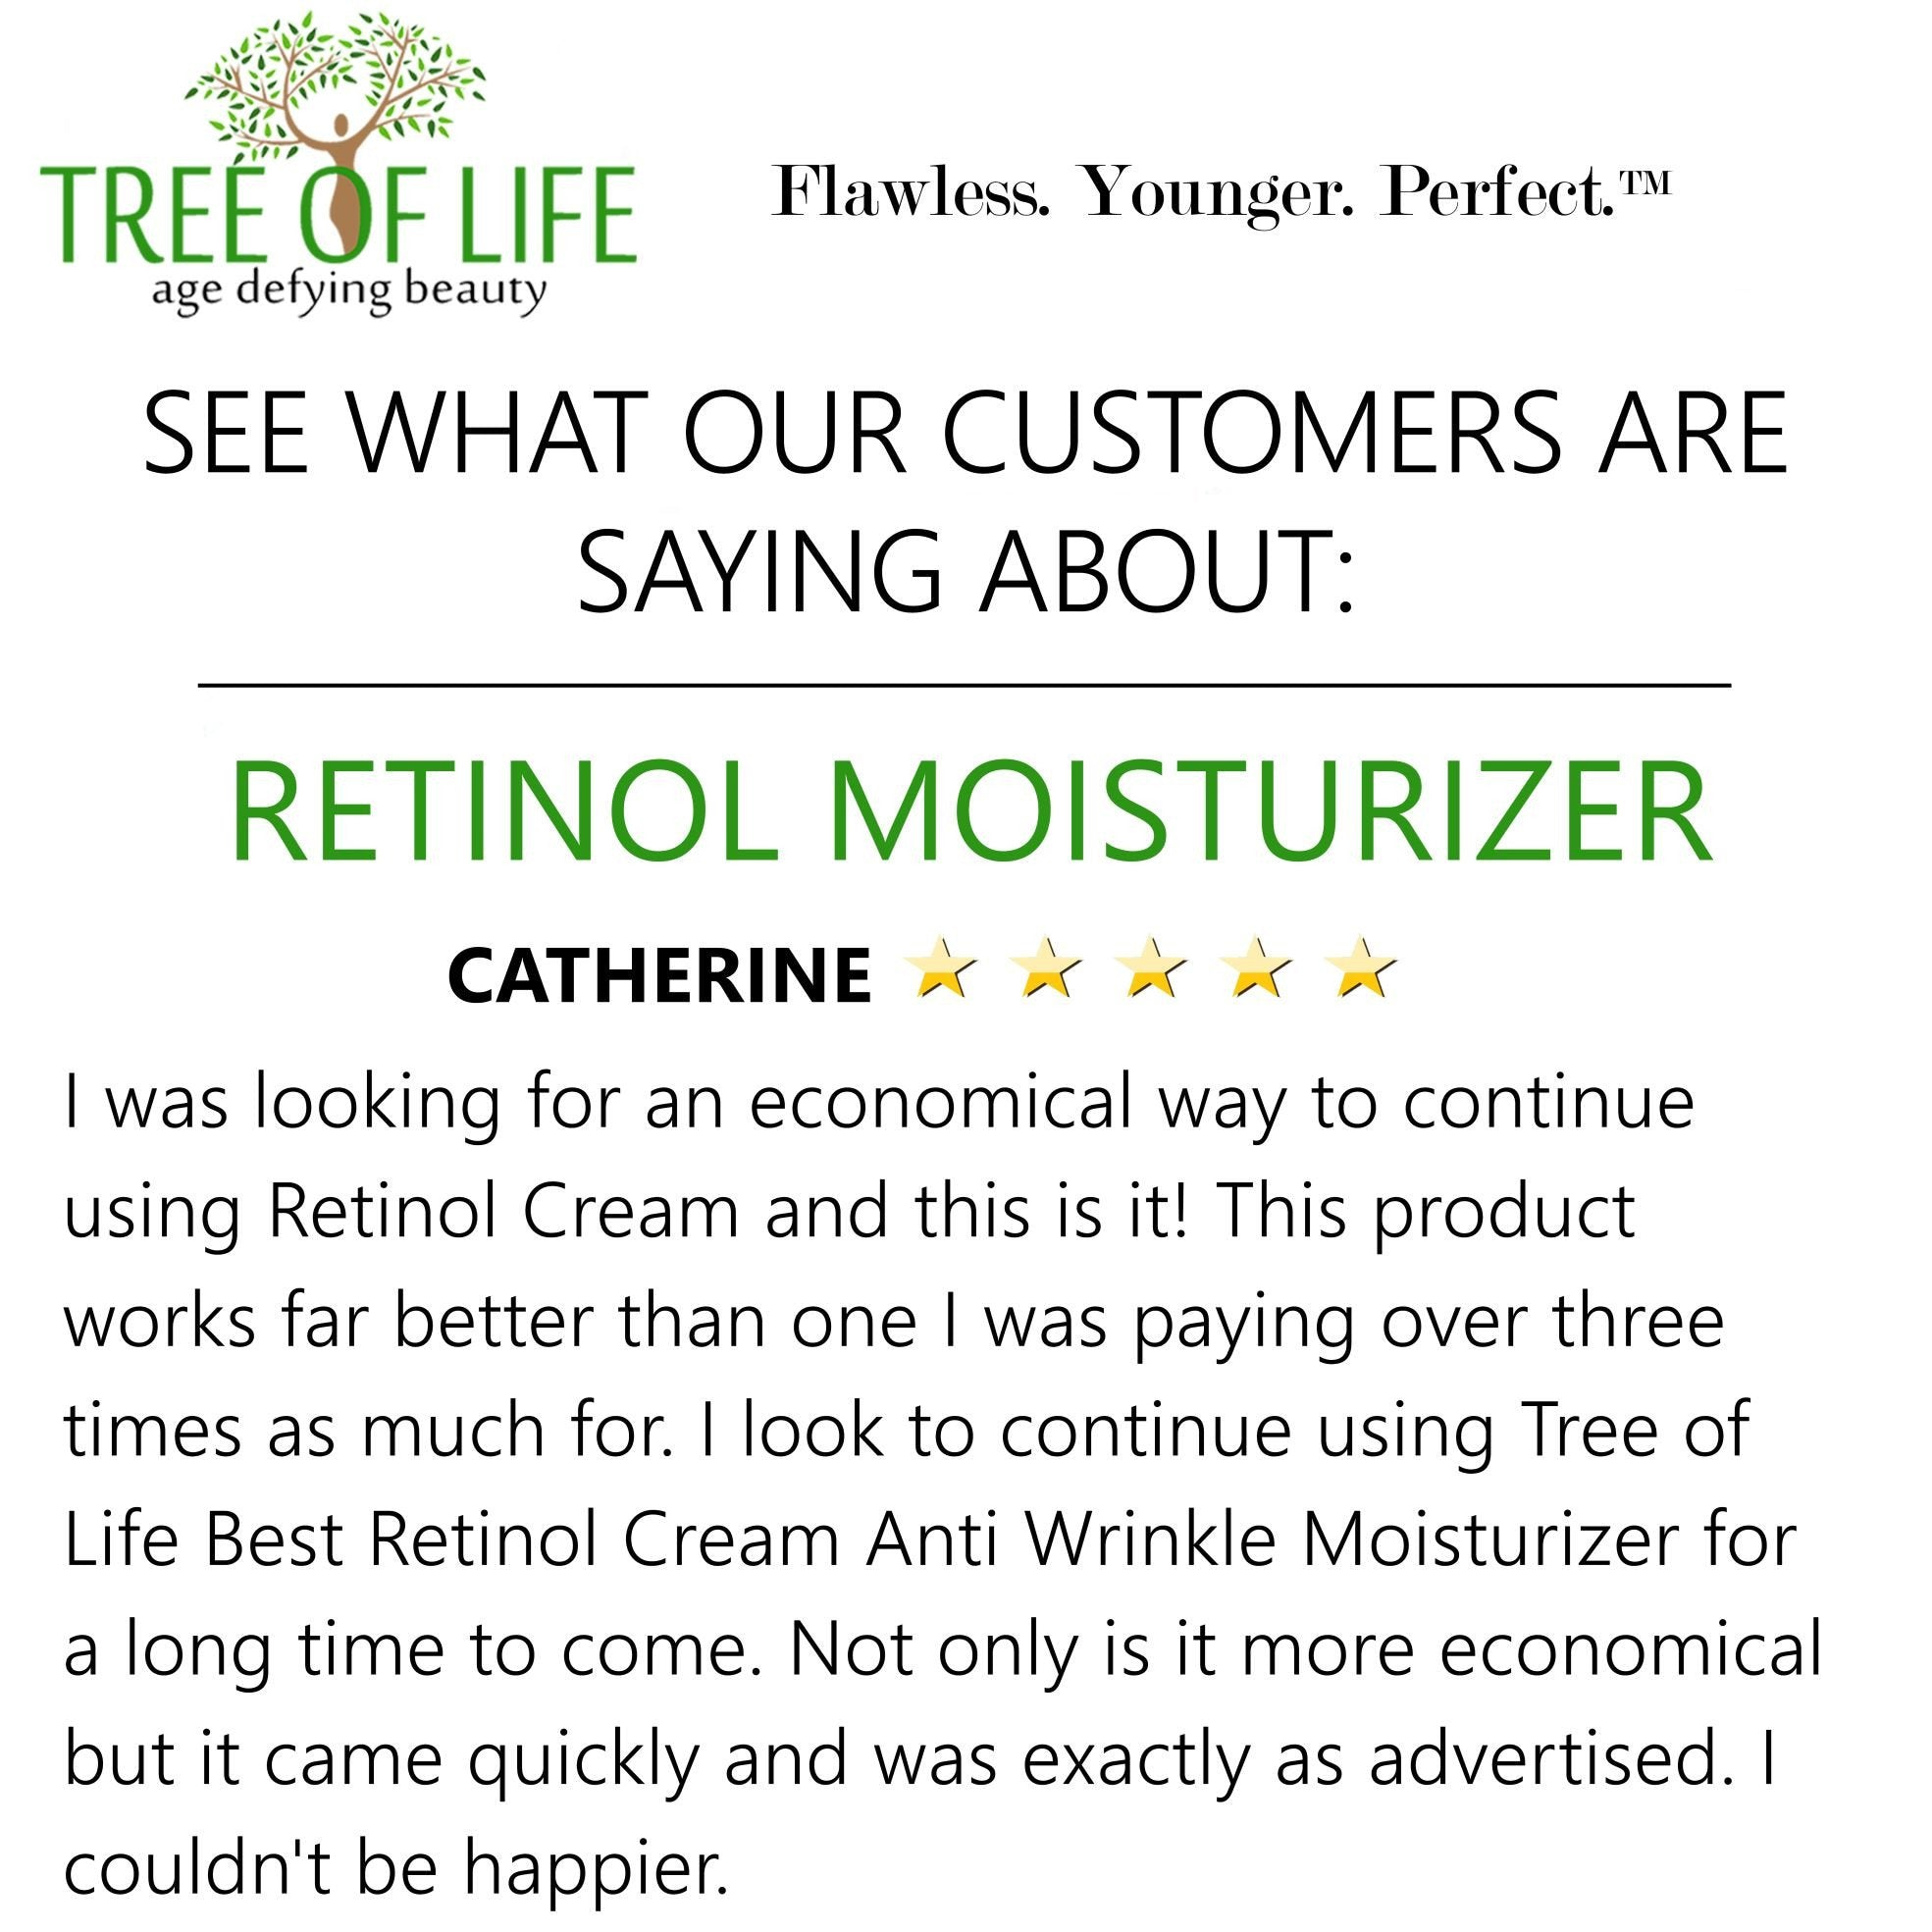 Retinol amounts in moisturizers -  See Our Customer Reviews For Proof For Our Retinol Moisturizer